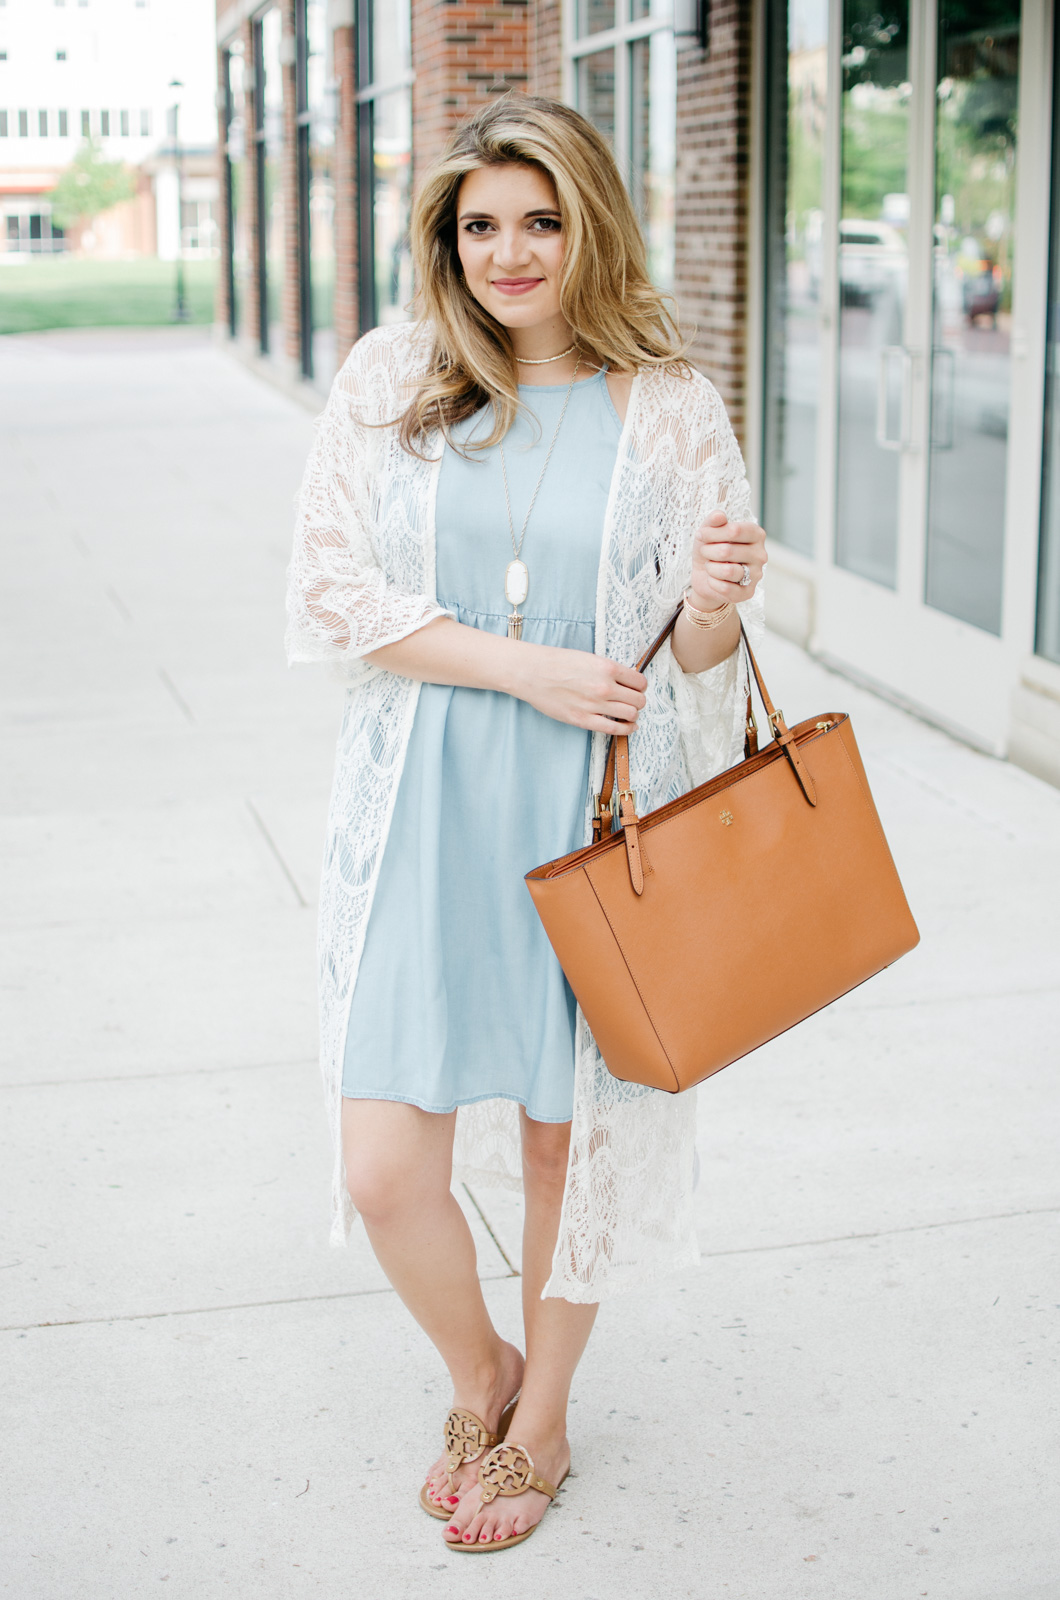 spring boho outfit - chambray dress with a long lace kimono | For more cute Spring outfits, head to bylaurenm.com